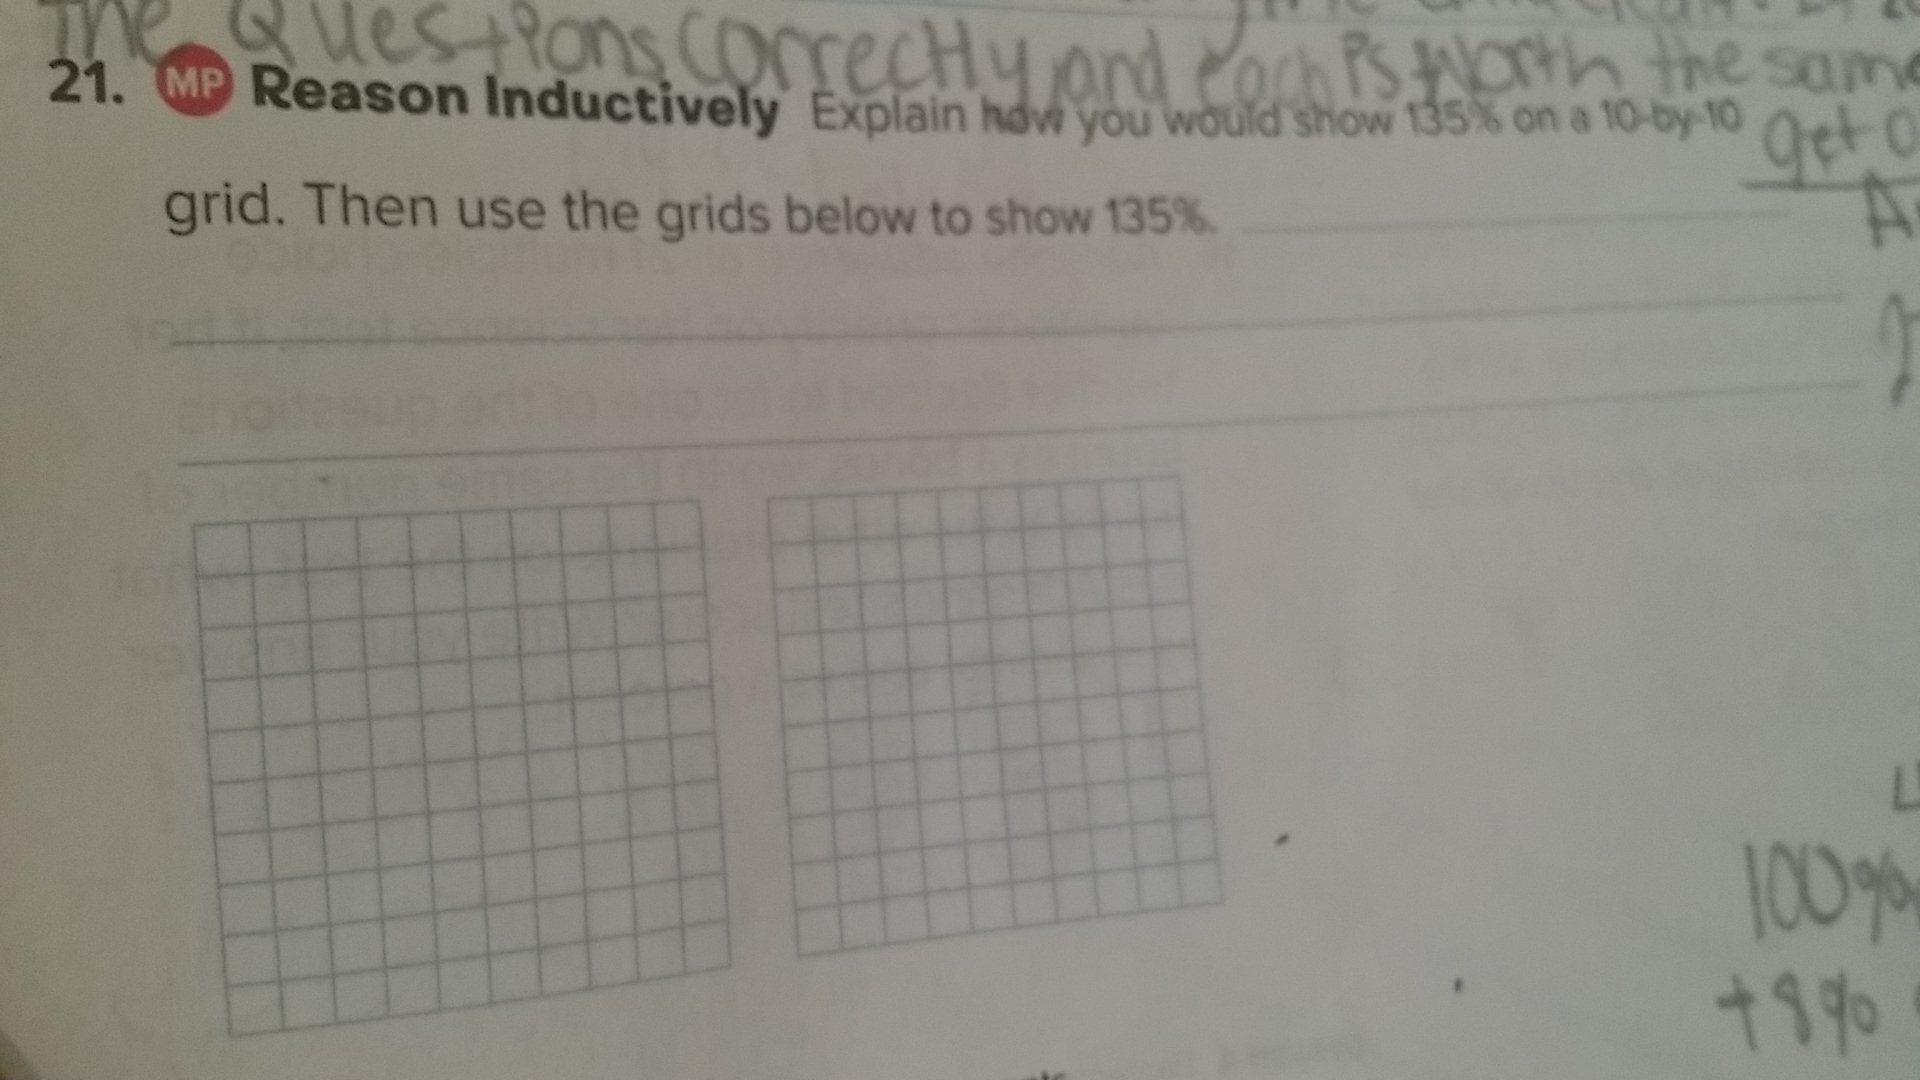 explain how you would show 135 on a 10 by 10 grid then use the